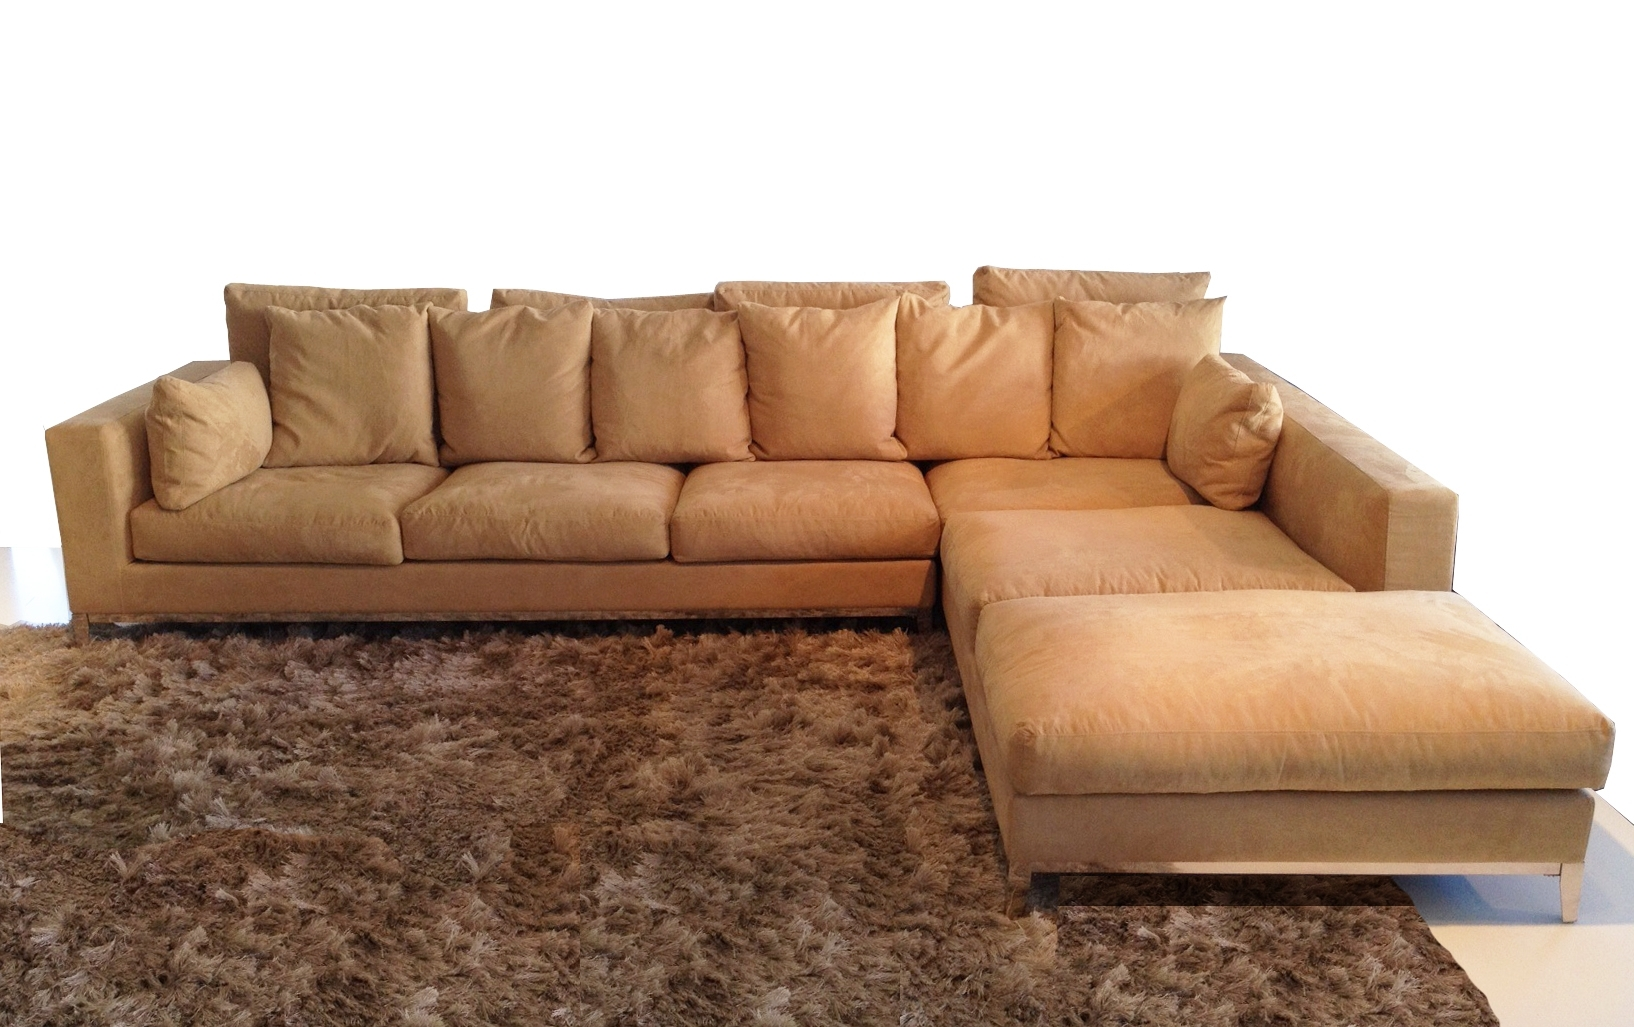 Long Chaise Sofas Regarding Most Up To Date Extra Large Sectional Sofas – Decofurnish (View 8 of 20)